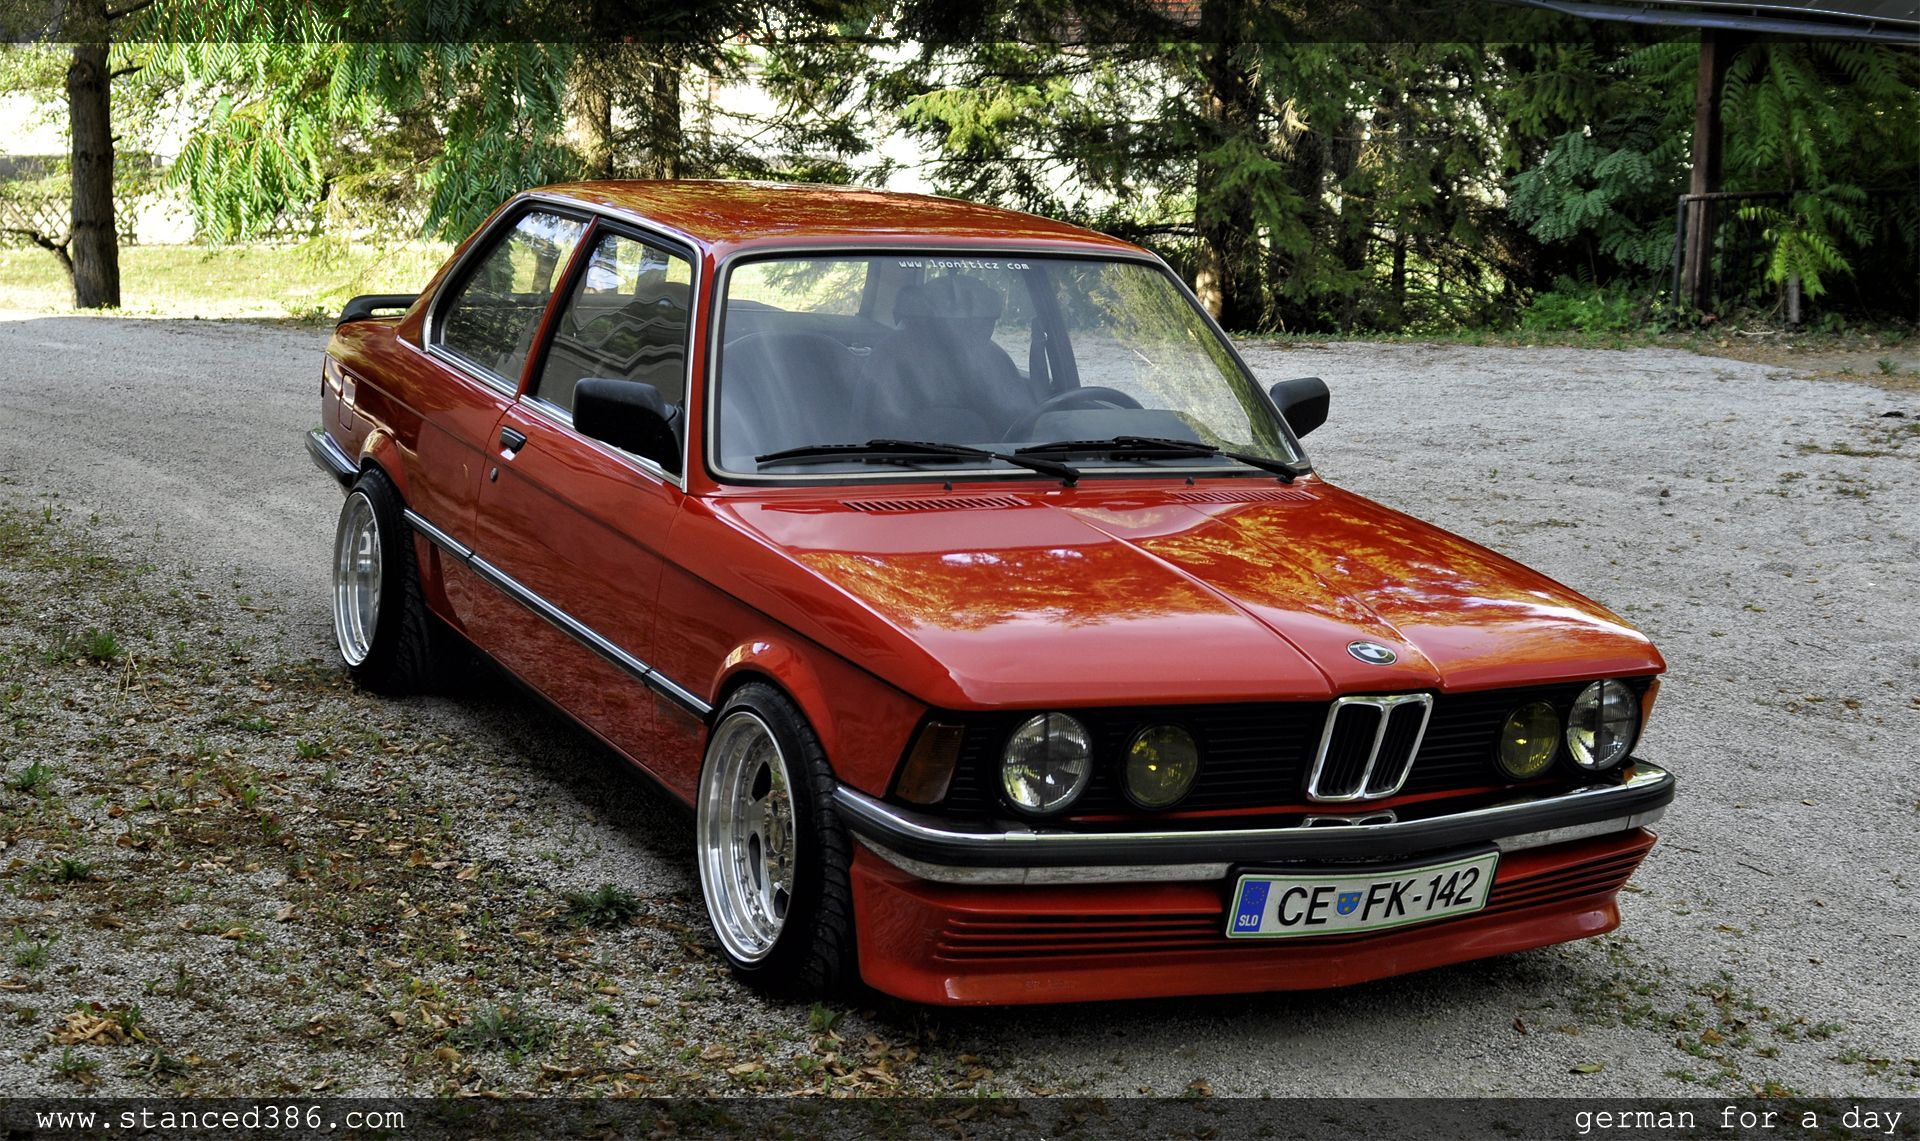 bmw e21 automotive pinterest bmw bmw 323i and search. Black Bedroom Furniture Sets. Home Design Ideas